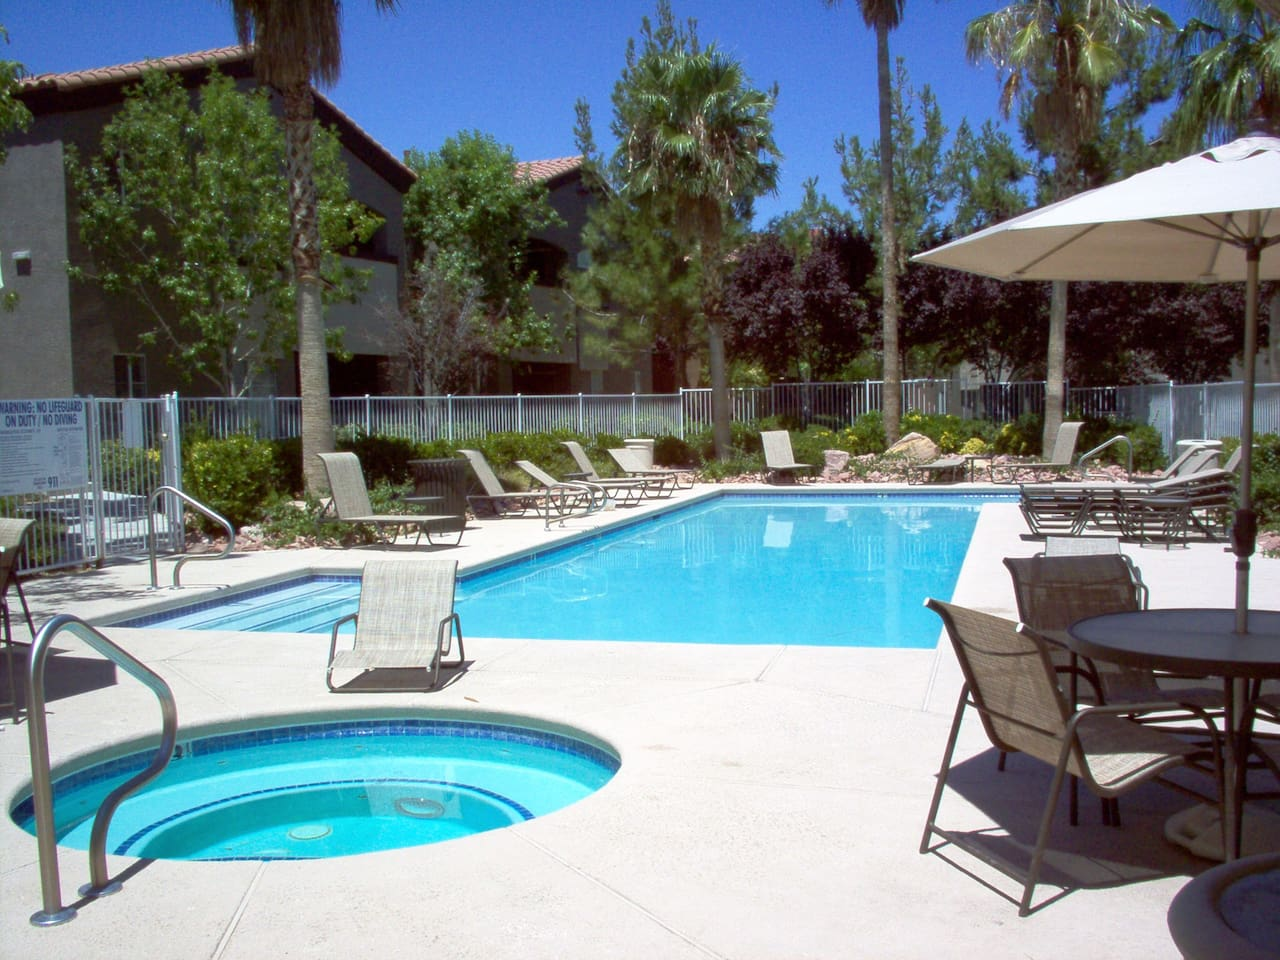 one of 3 pools and spa, clubhouse  gym  raquet ball walking path grassy area